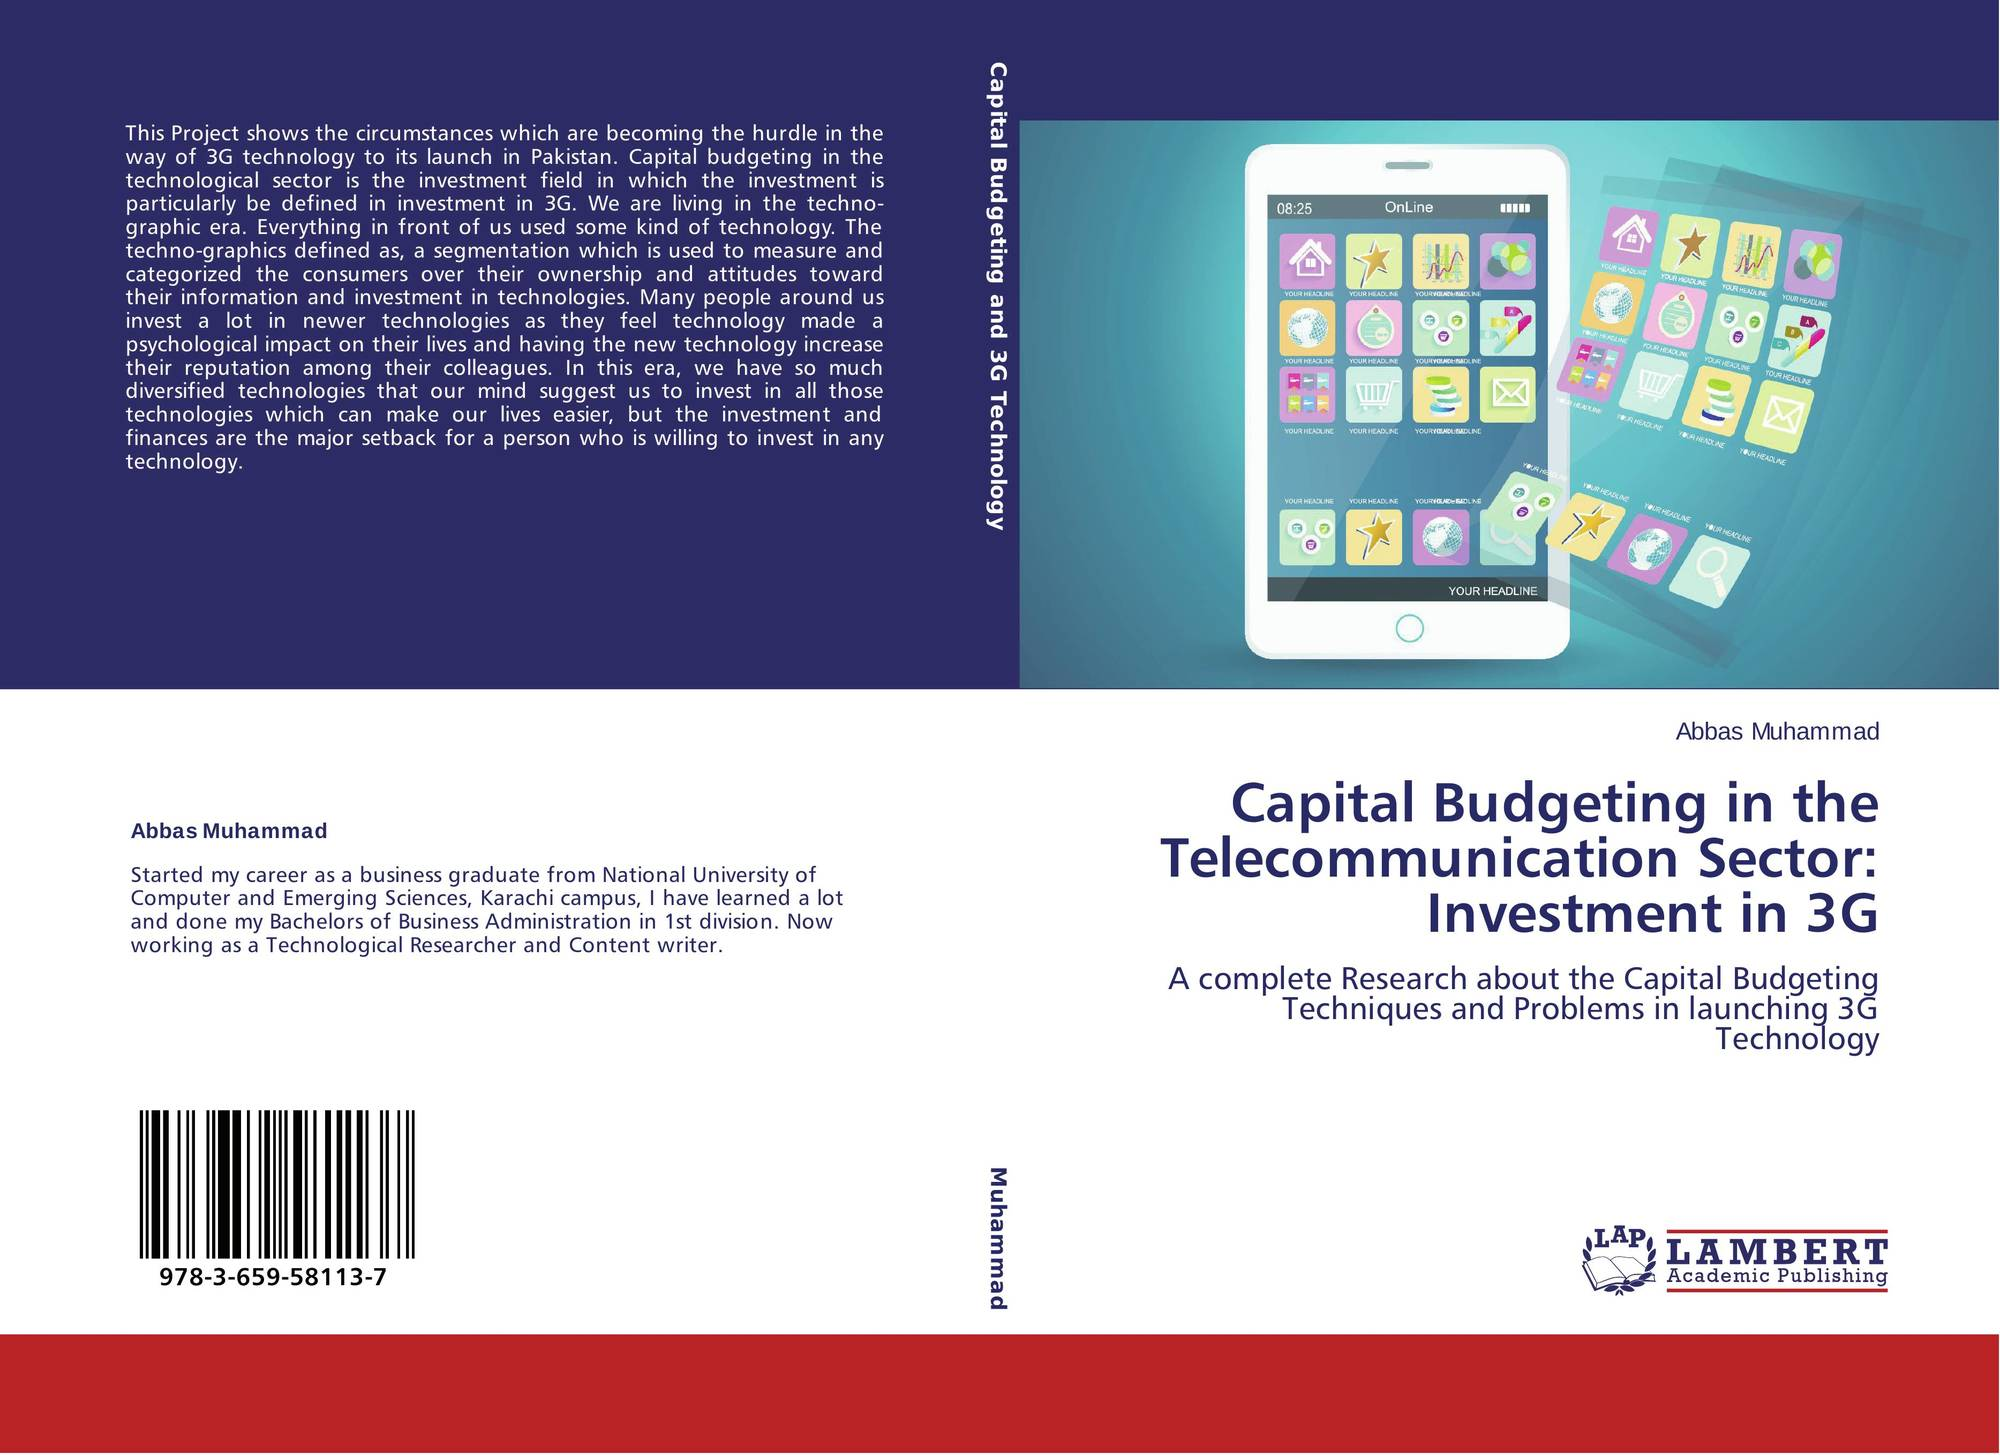 capital budgeting exercise Developing operating & capital budgets for your hard court facility  for  purposes of this capital budgeting exercise, we will assume that you spent $315  on.